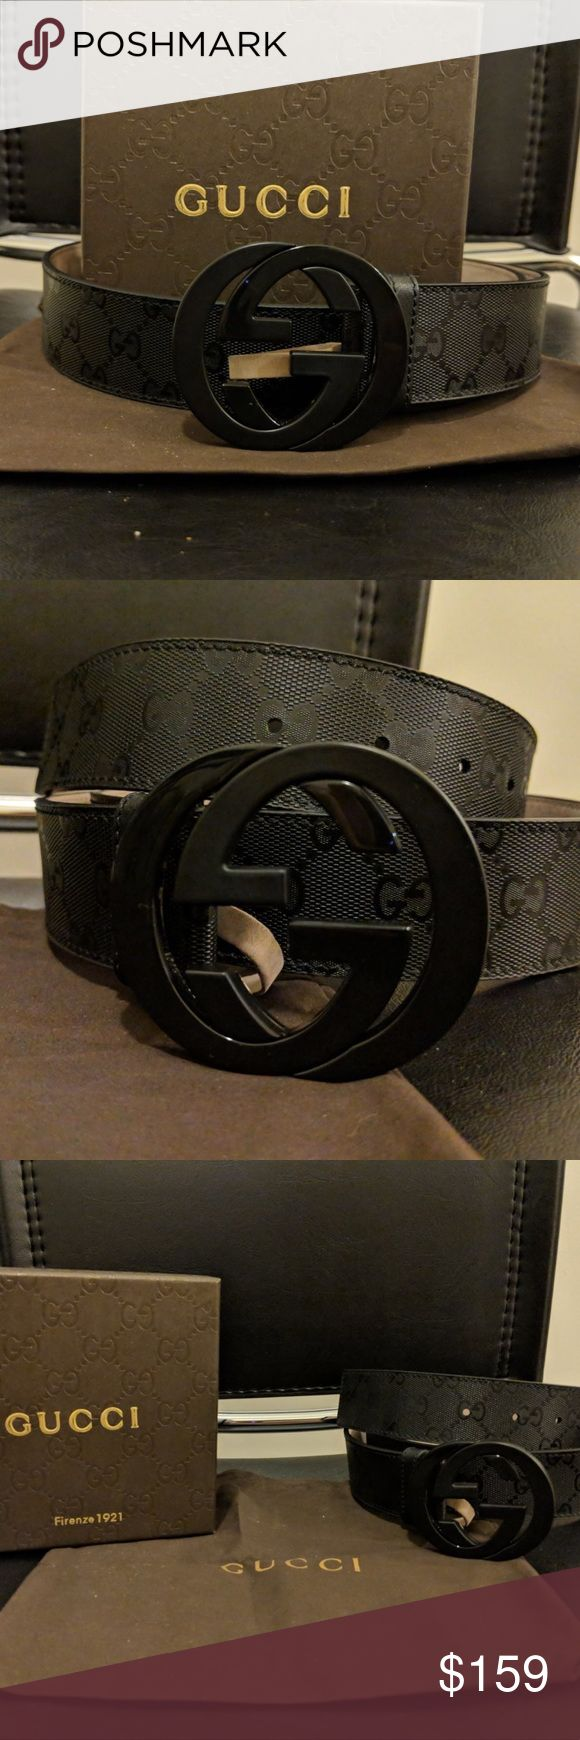 🔥HOT🔥Authentic Men's Black Imprime Gucci Belt This is a brand new never opened 100% Authentic Gucci Belt  *Bought from Gucci Outlet Store  Comes with  -Dust Bag -Original Tags  -Box  Sizing is easy just find your pants size and click buy!   Belt ships out same day through USPS Priority Shipping! Arriving in 1-3 Days  Use the offer button! If it is reasonable I will consider! Bundles are a money saver!   Feel fee to drop a comment below!   Get this for you' loved ones for this Christmas…